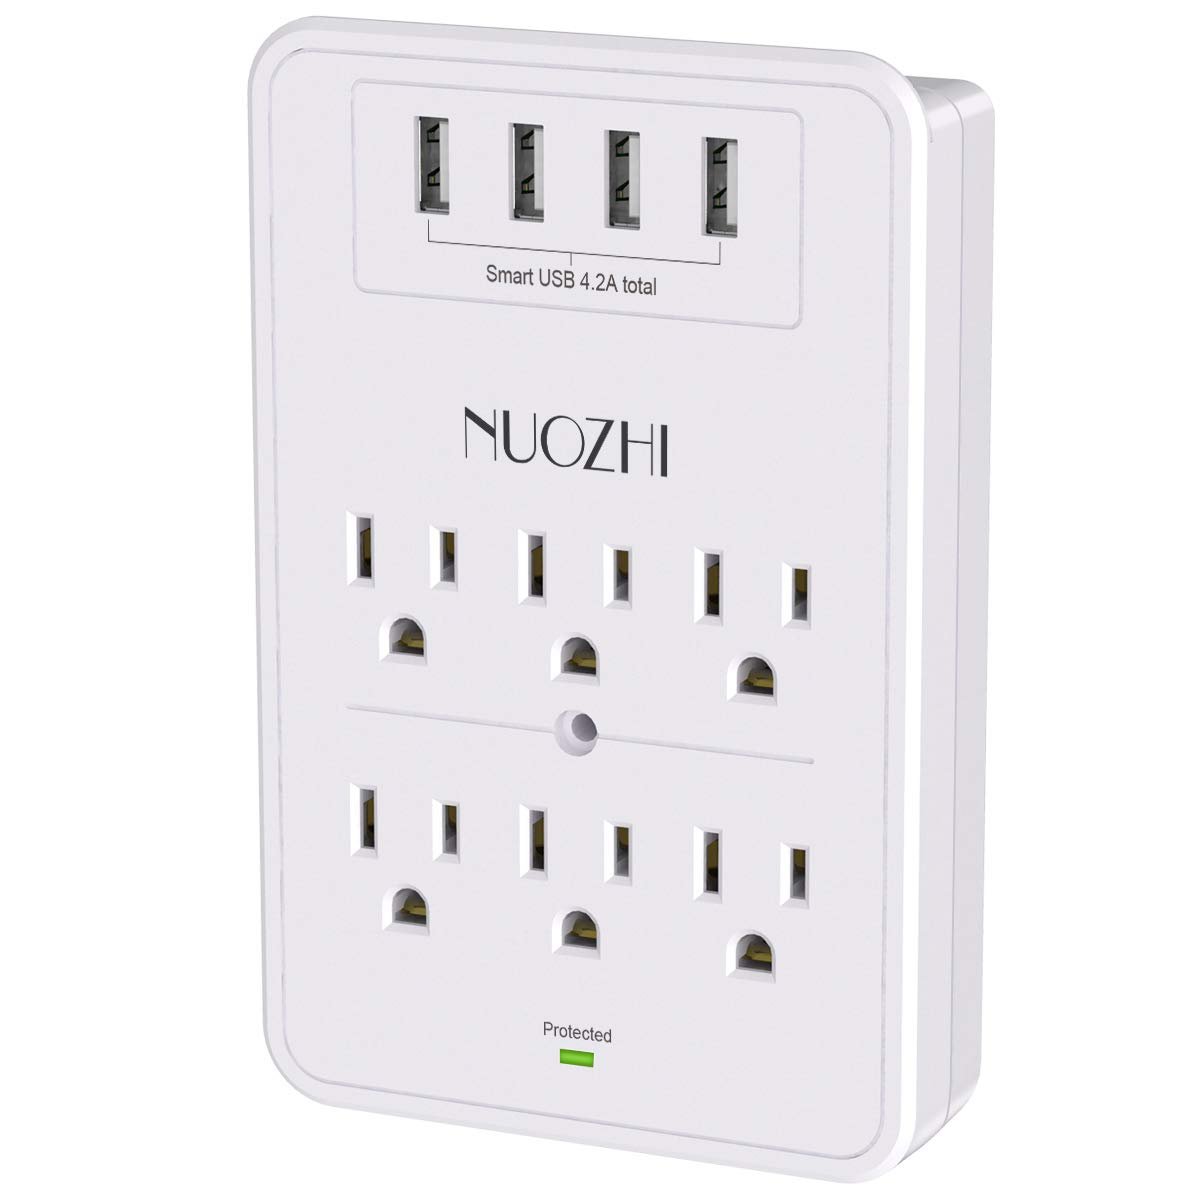 Multi Plug Outlet, Surge Protector, NUOZHI 6-Outlet Extender with USB Wall Charger and 4 USB Ports,1680 Joules, White, ETL Listed